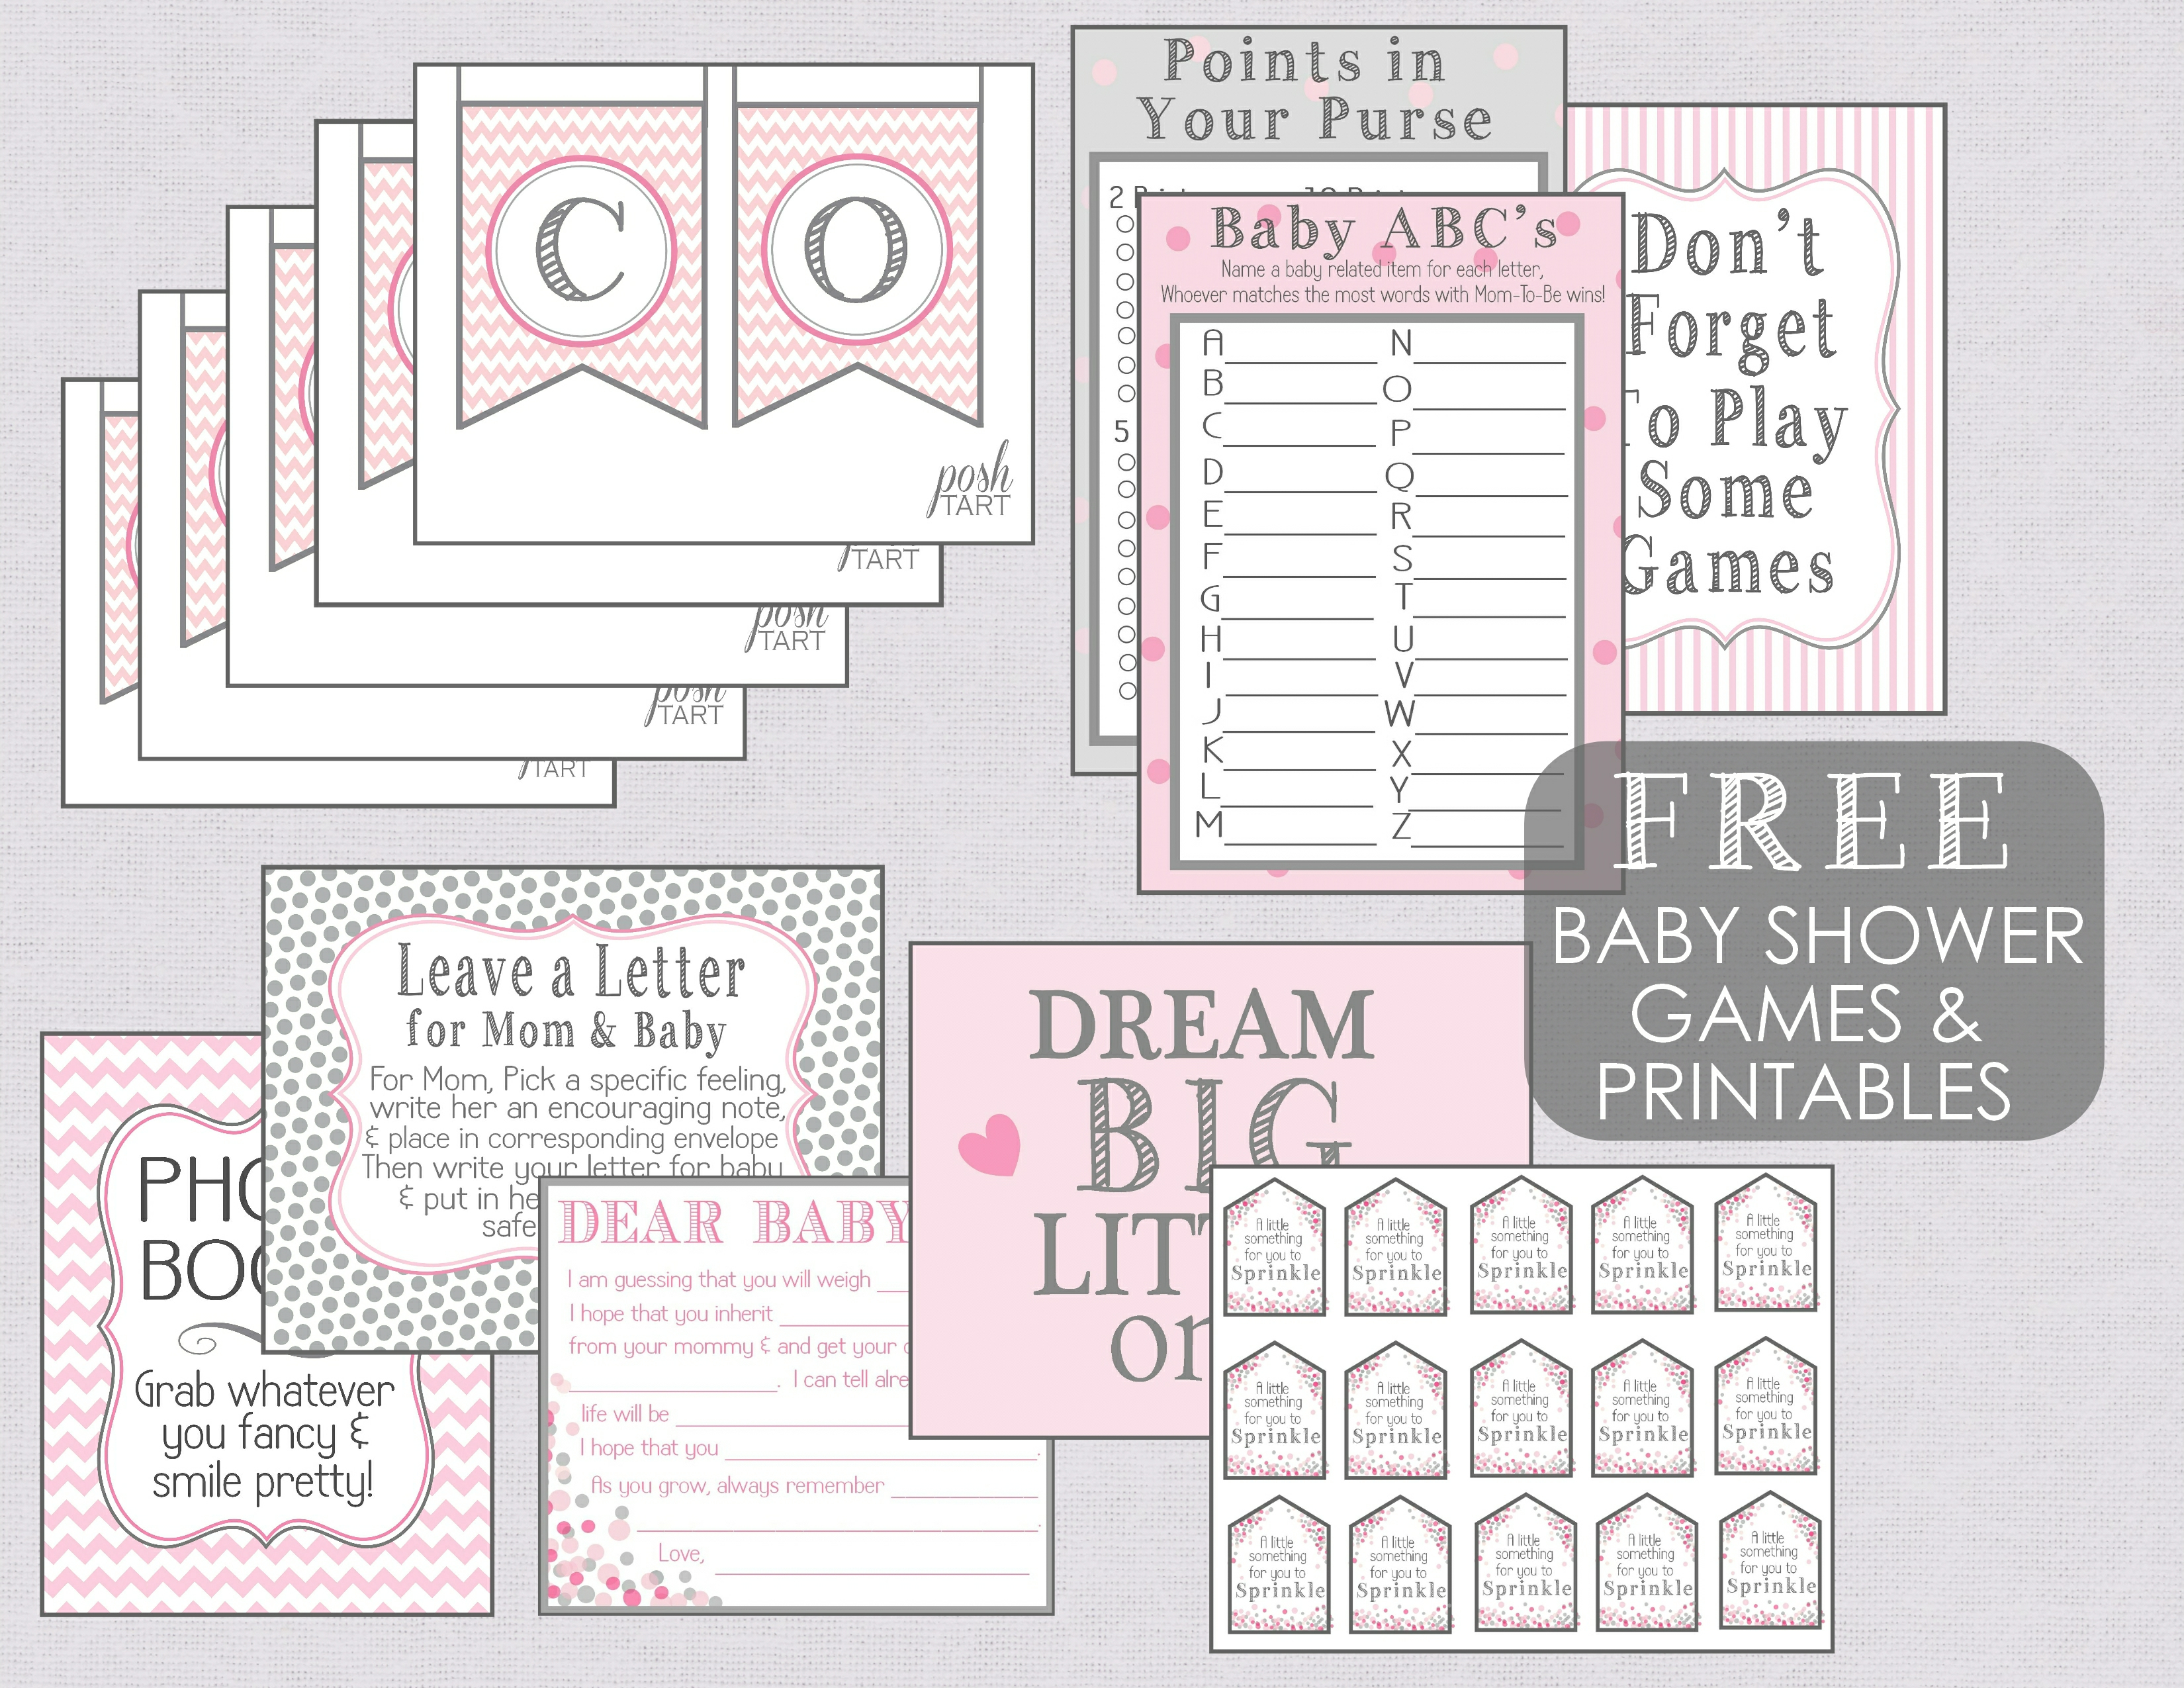 A baby sprinkle contd free printables posh tart free baby shower games and printables pronofoot35fo Choice Image